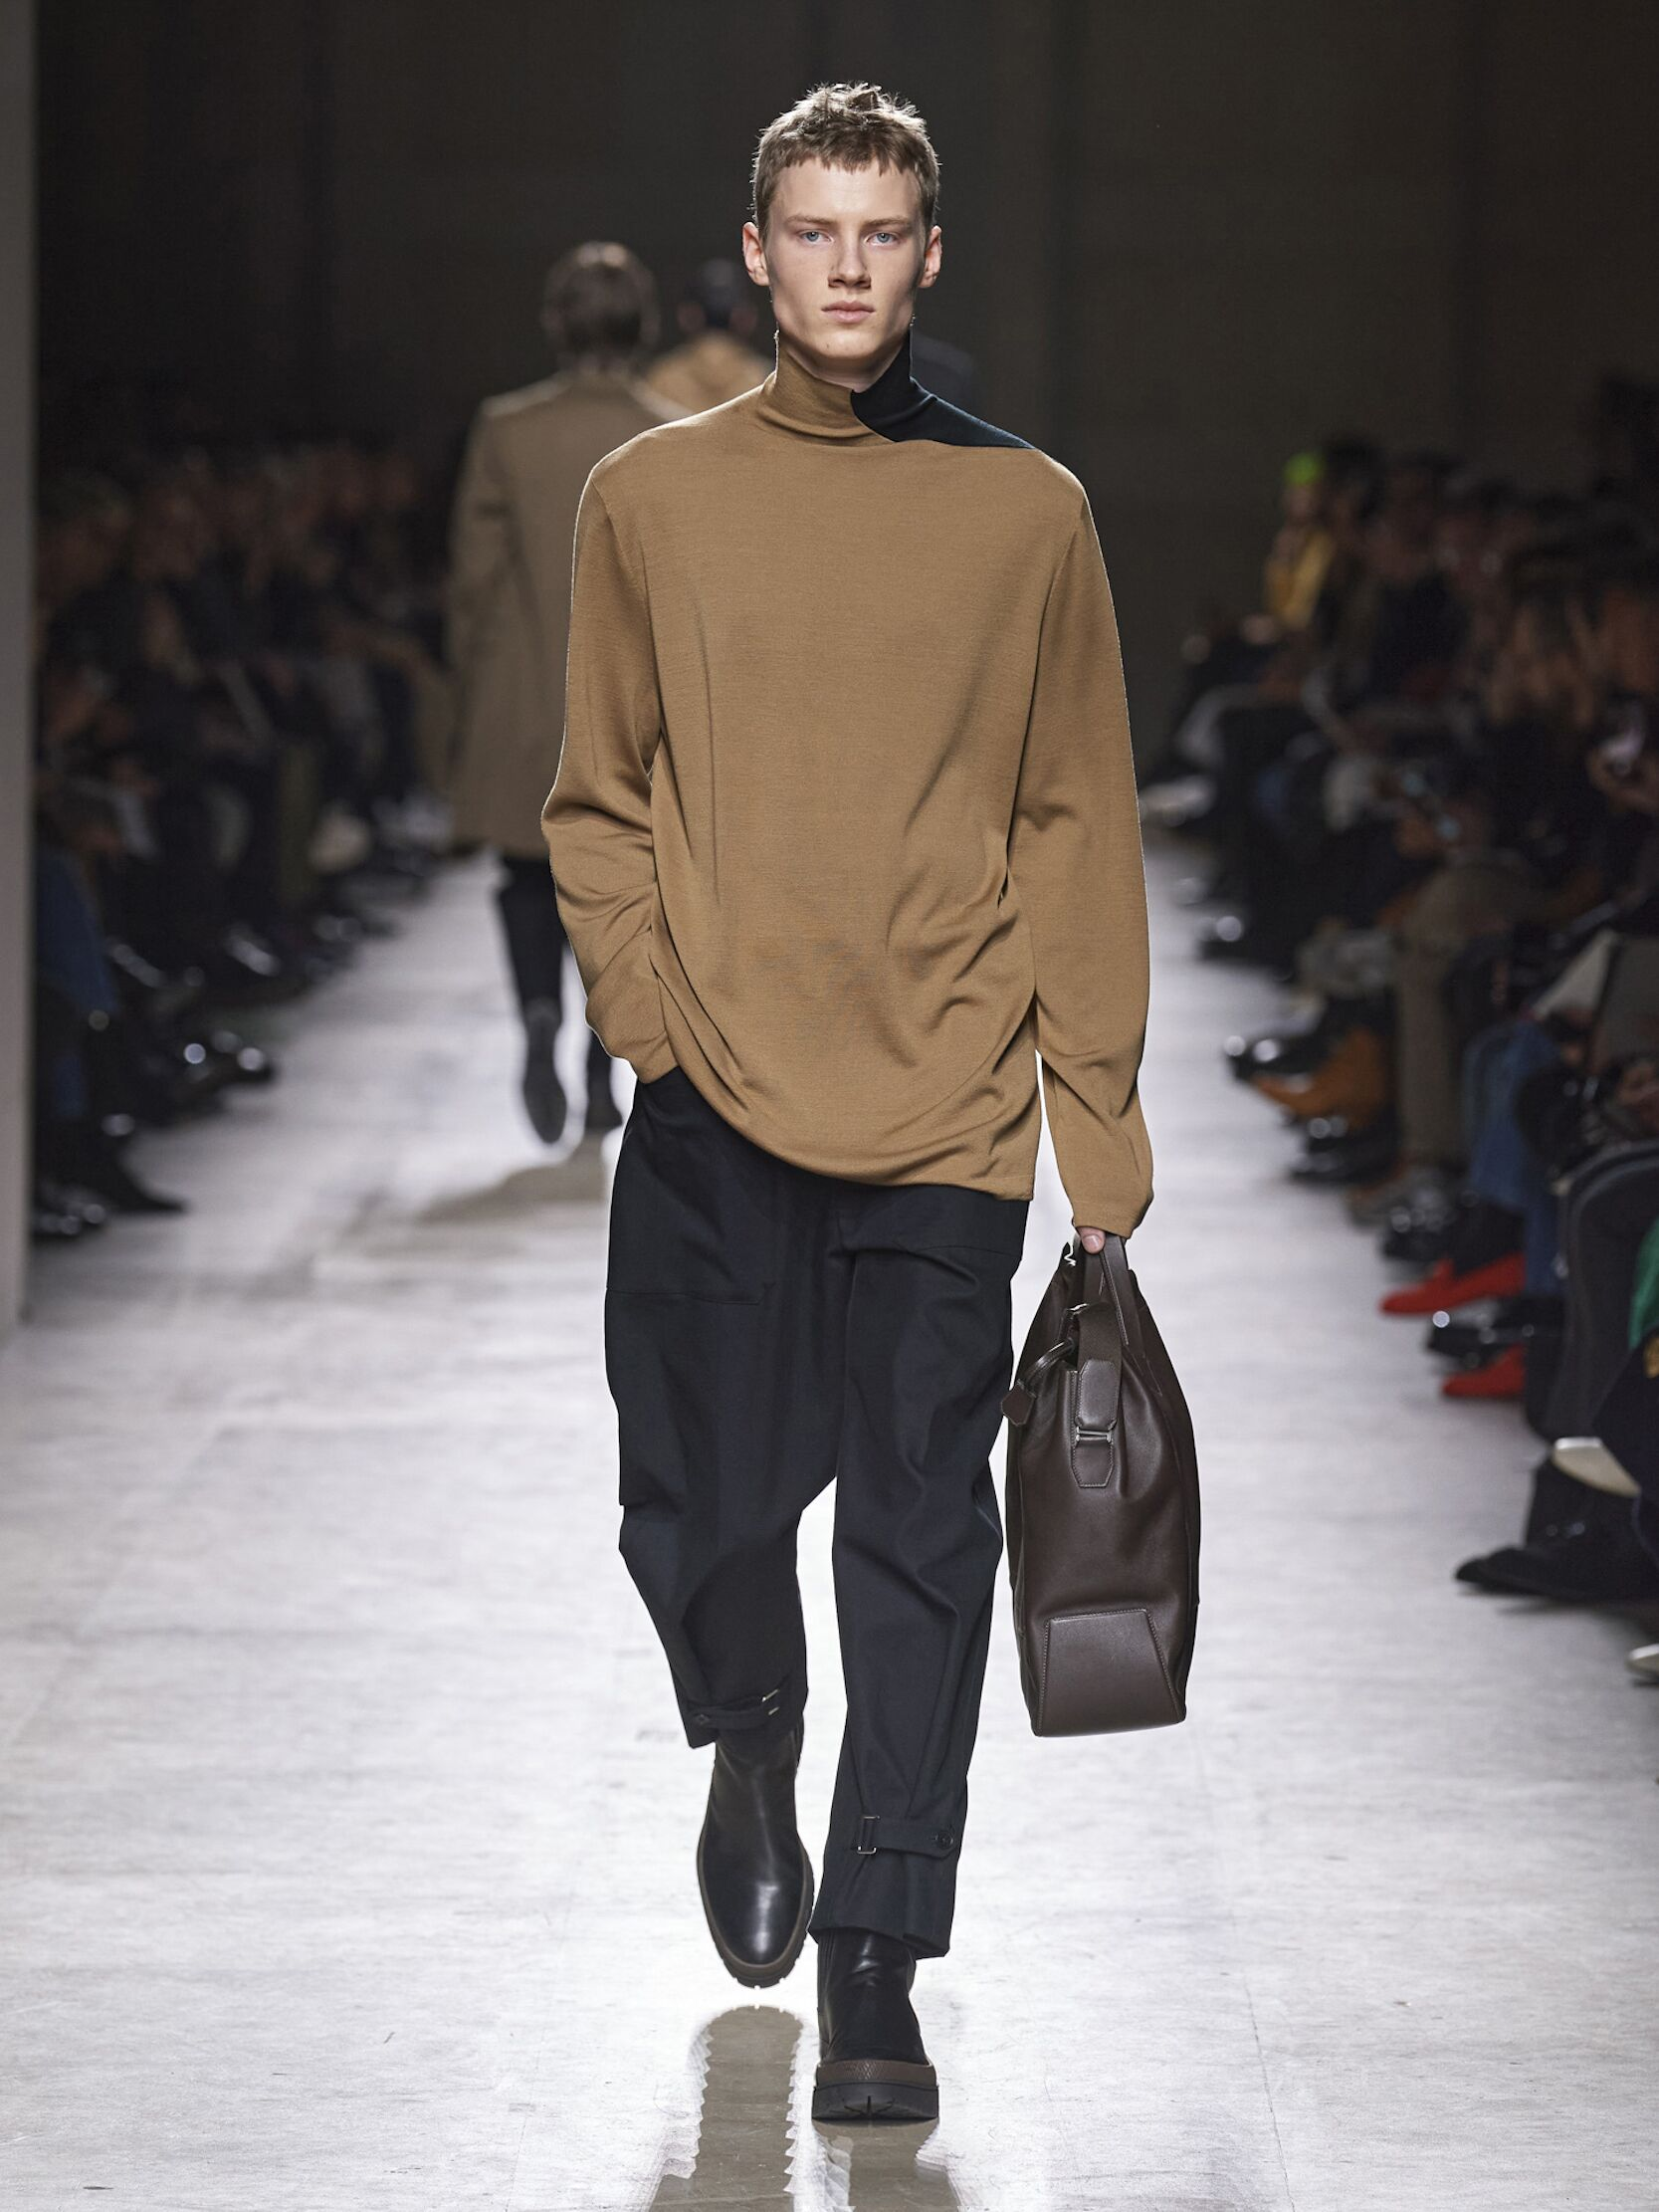 FW 2020-21 Fashion Show Hermès